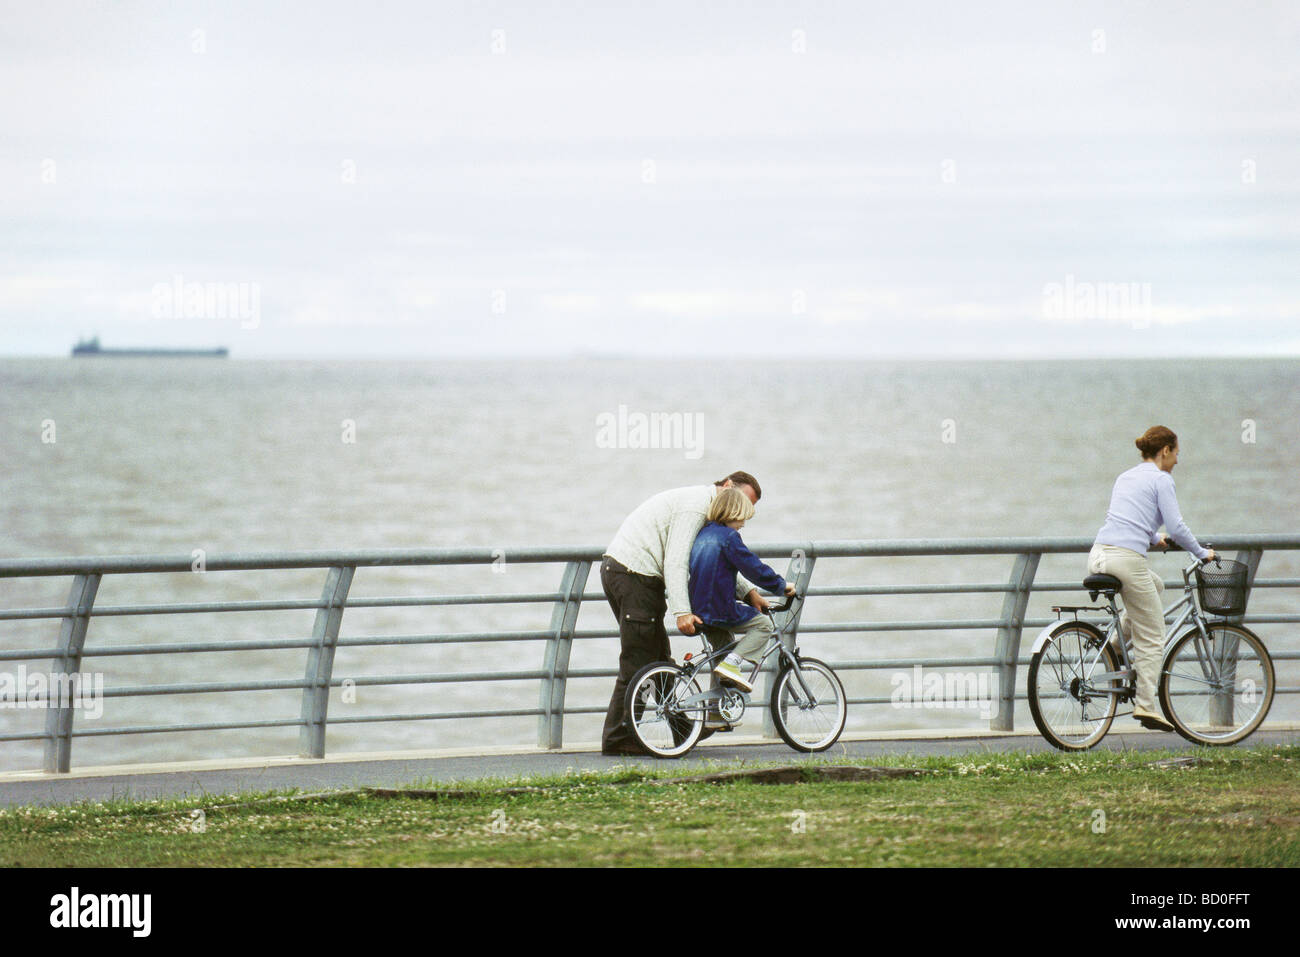 Father helping son learn to ride bicycle at seaside park, mother riding ahead - Stock Image